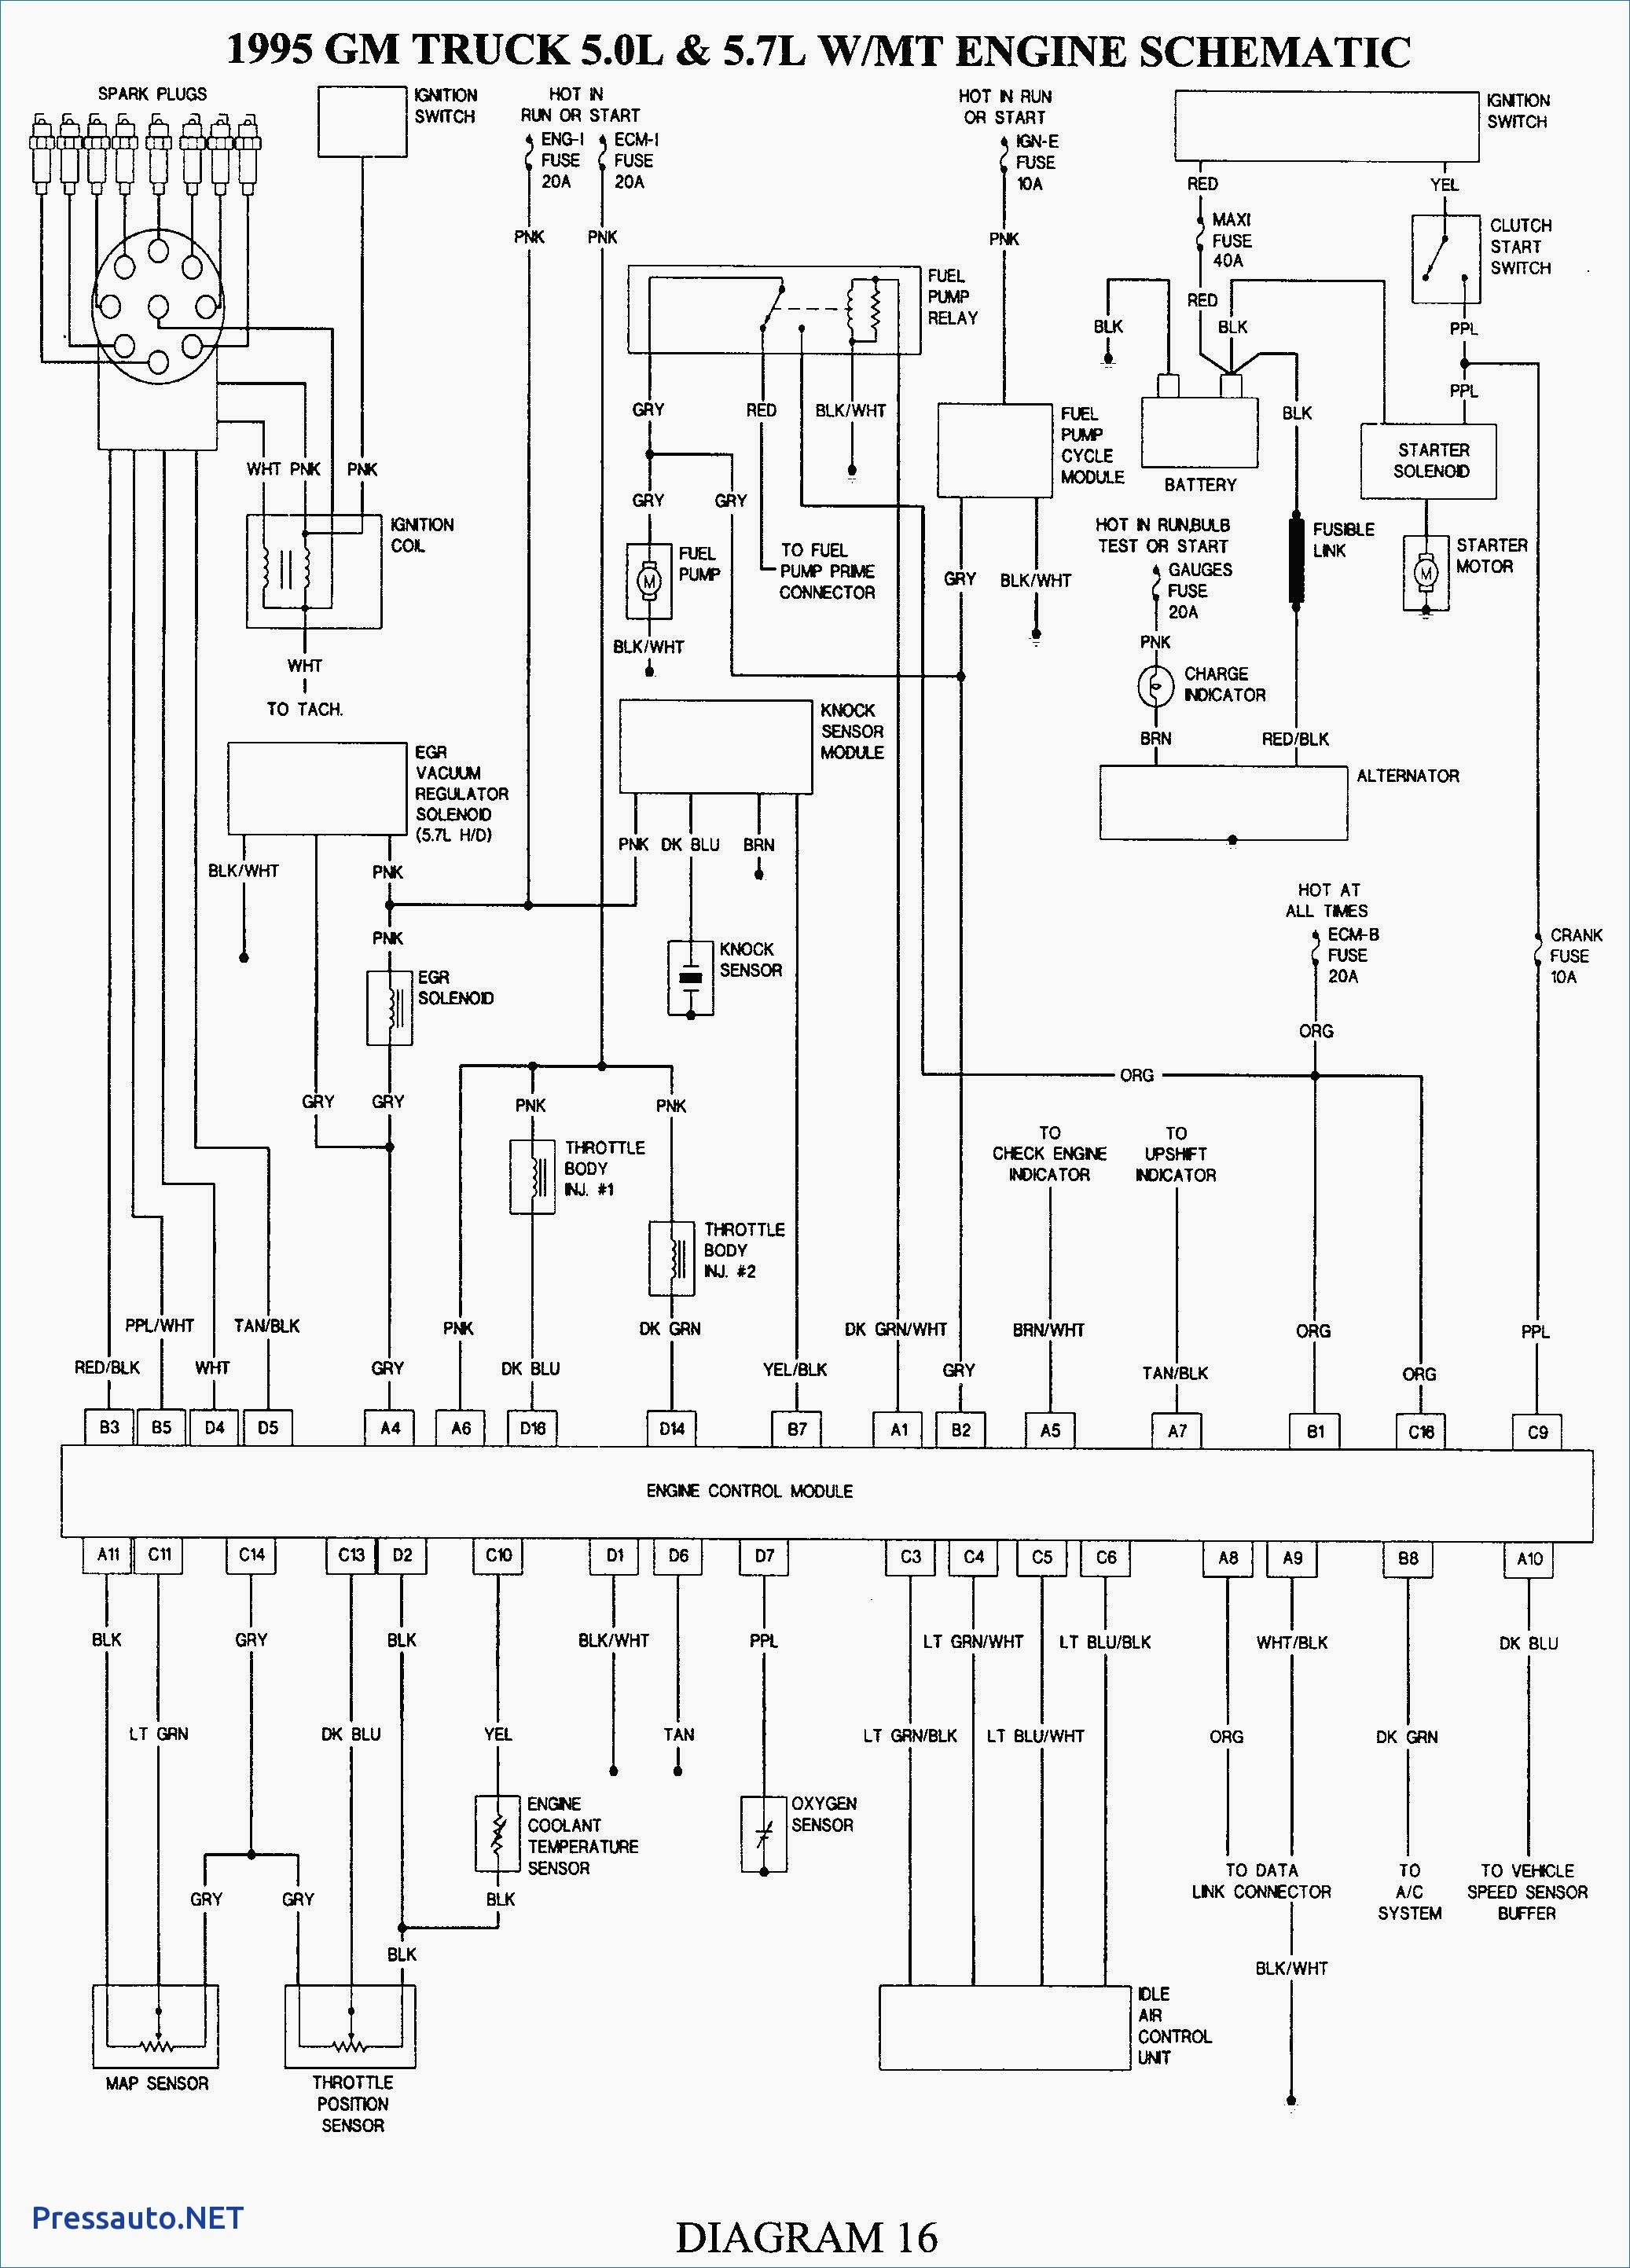 Dump Truck Wiring Diagram. . Wiring Diagram on